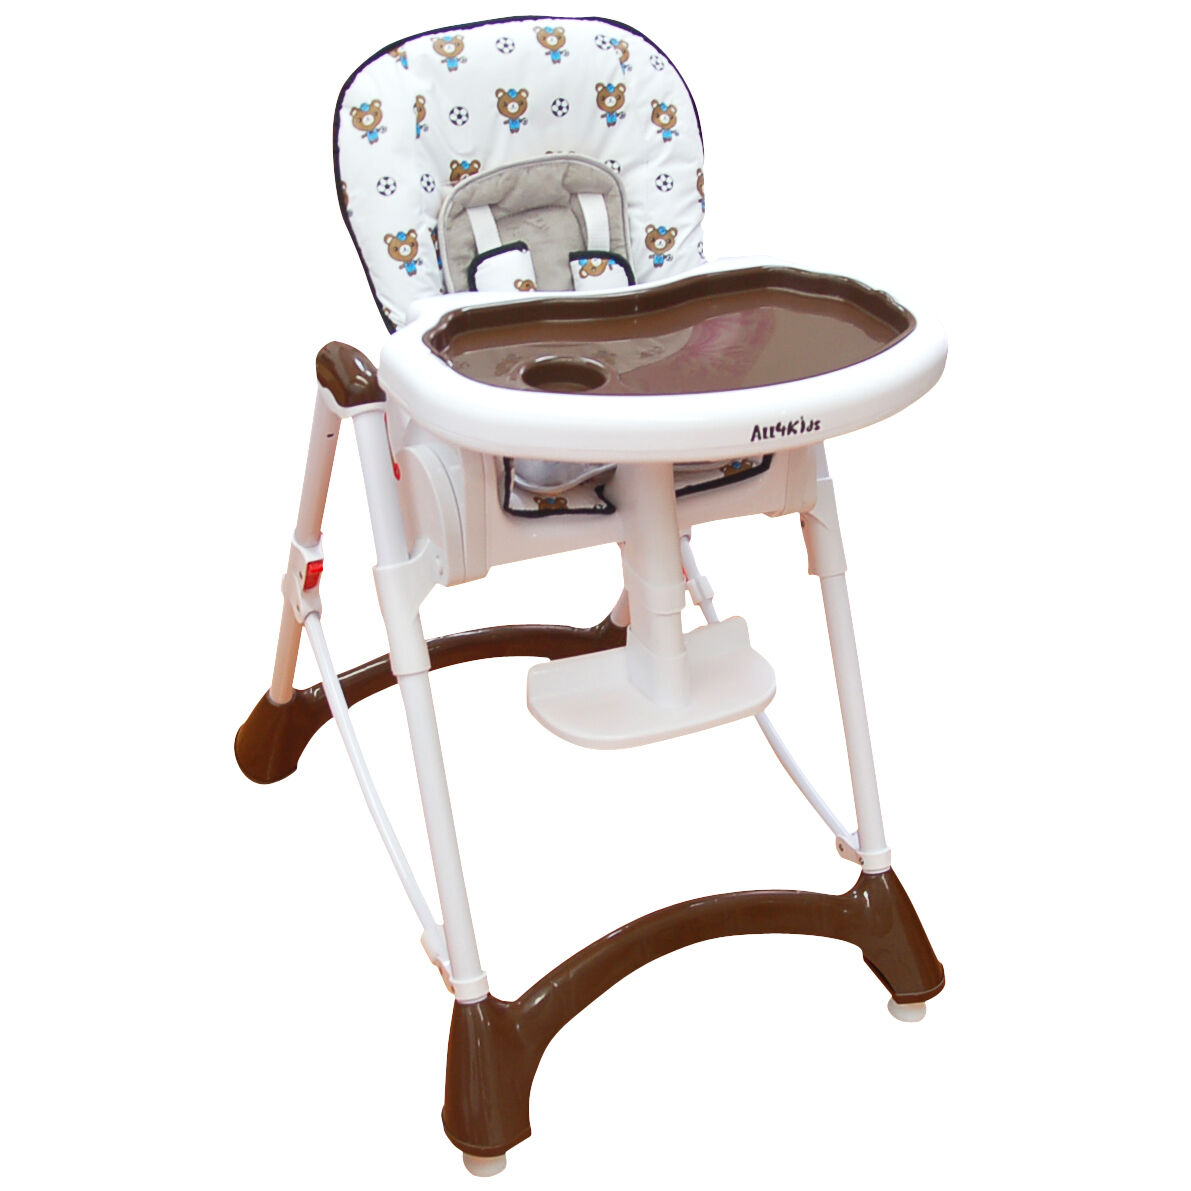 Adjustable High Chair Baby Foldable Reclining High Chair Adjustable Safe